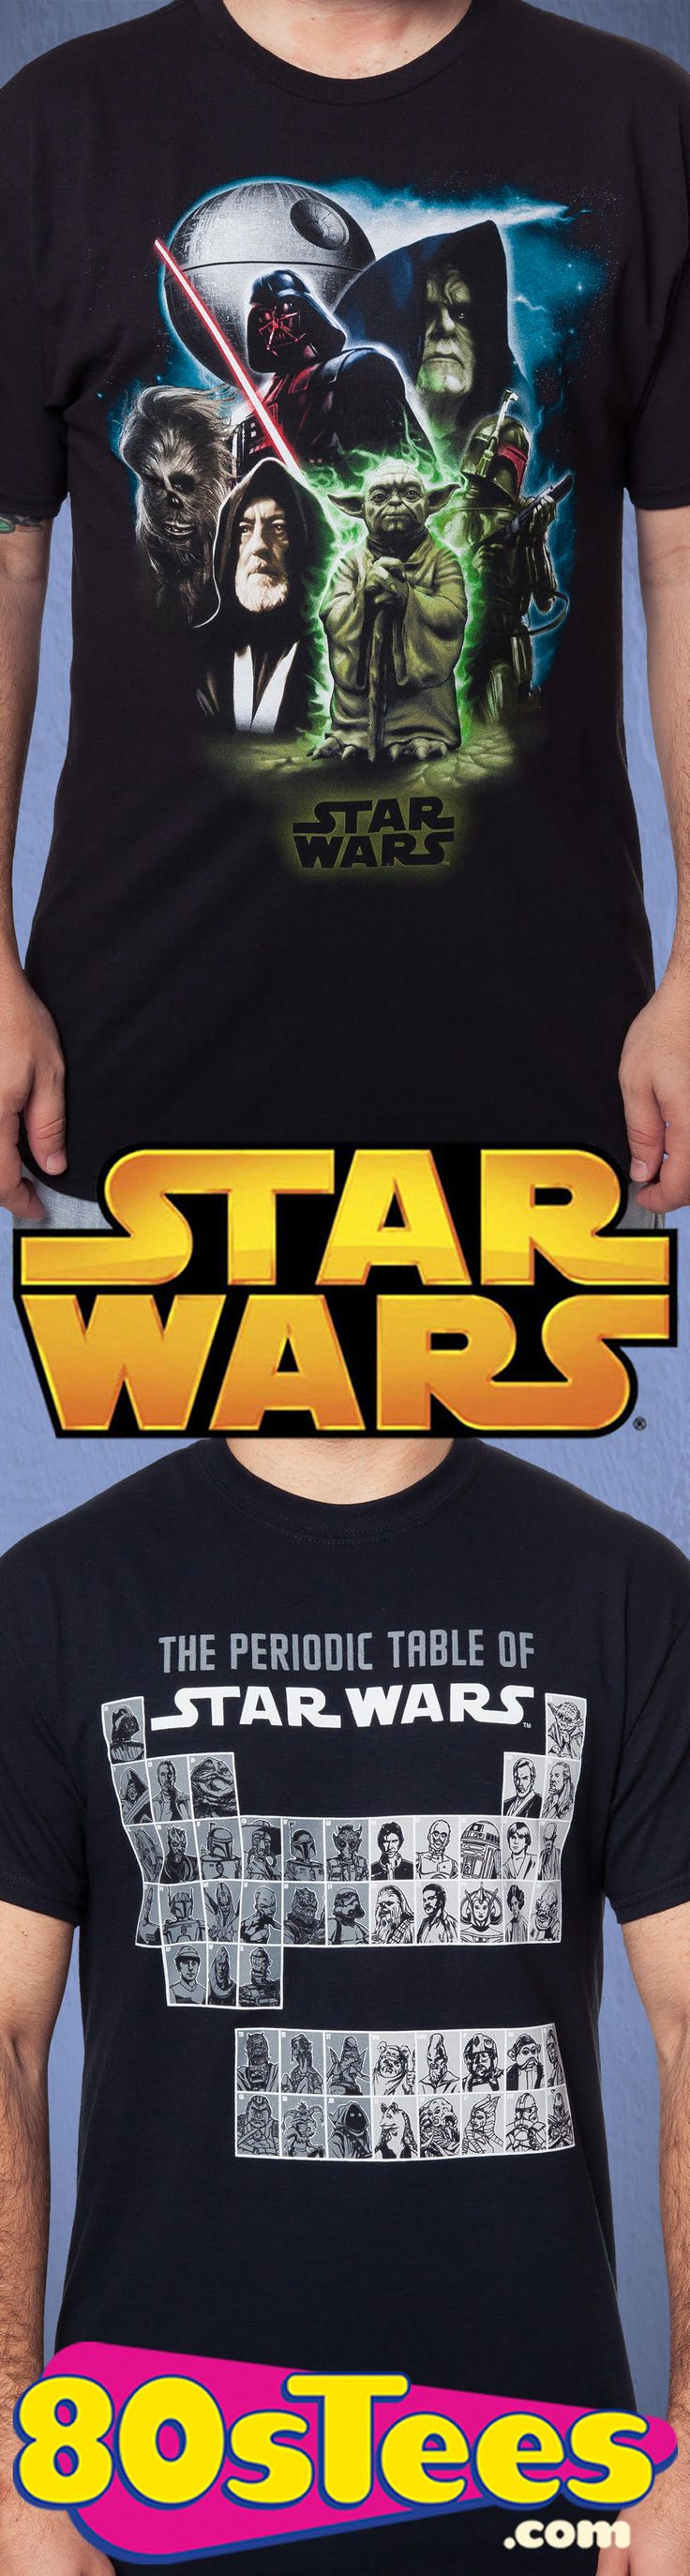 80sTees.com is the best place to go for Star Wars t-shirts!  We have the best designs, the most sizes, and great prices!